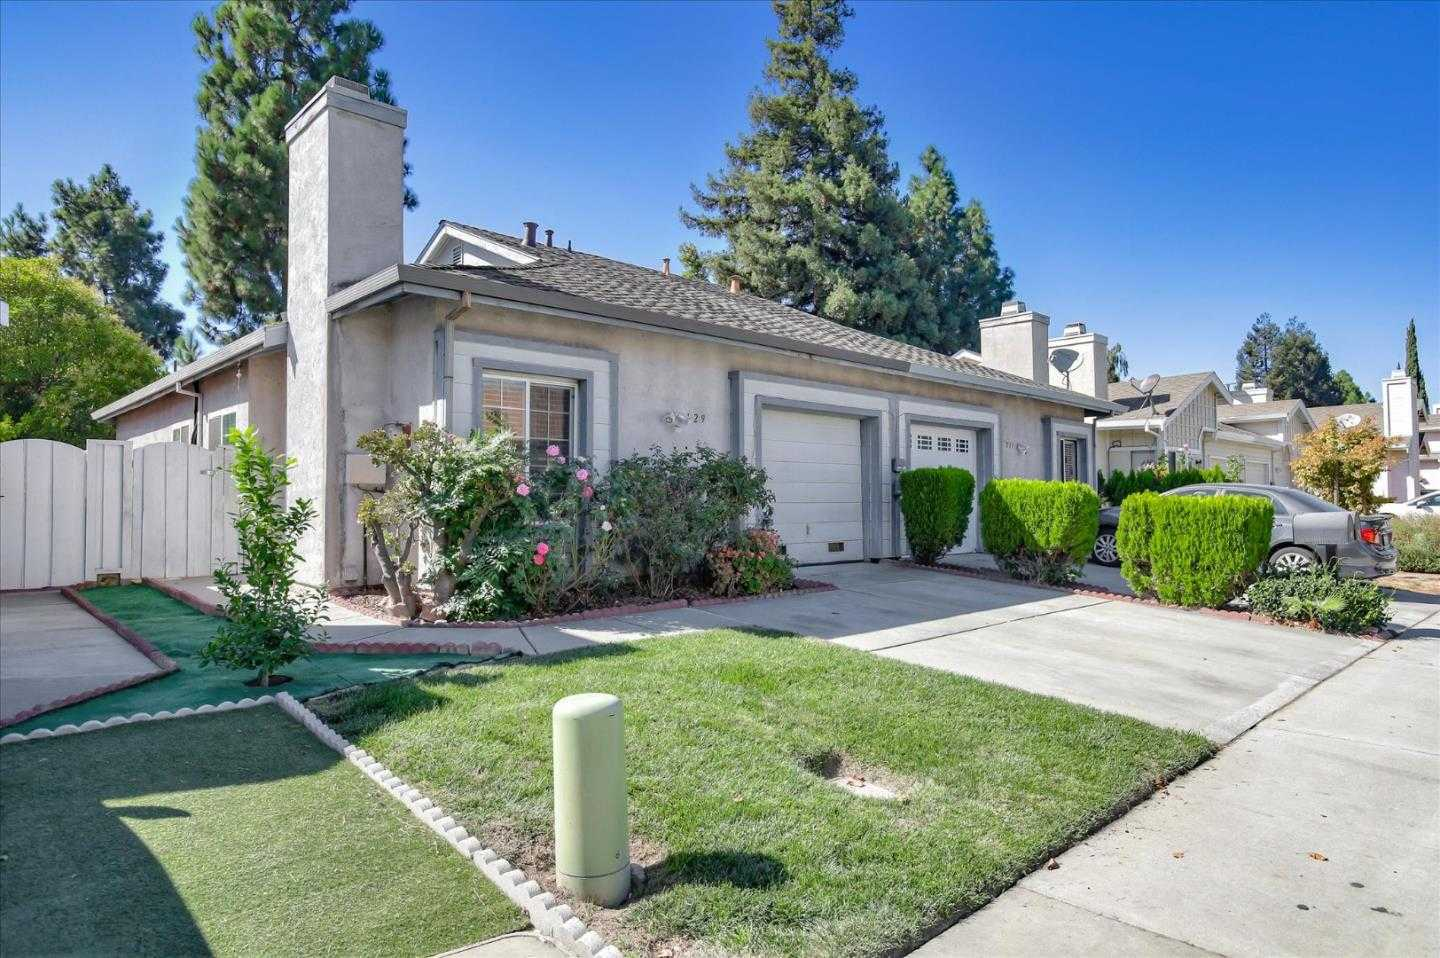 $675,000 - 2Br/2Ba -  for Sale in San Jose